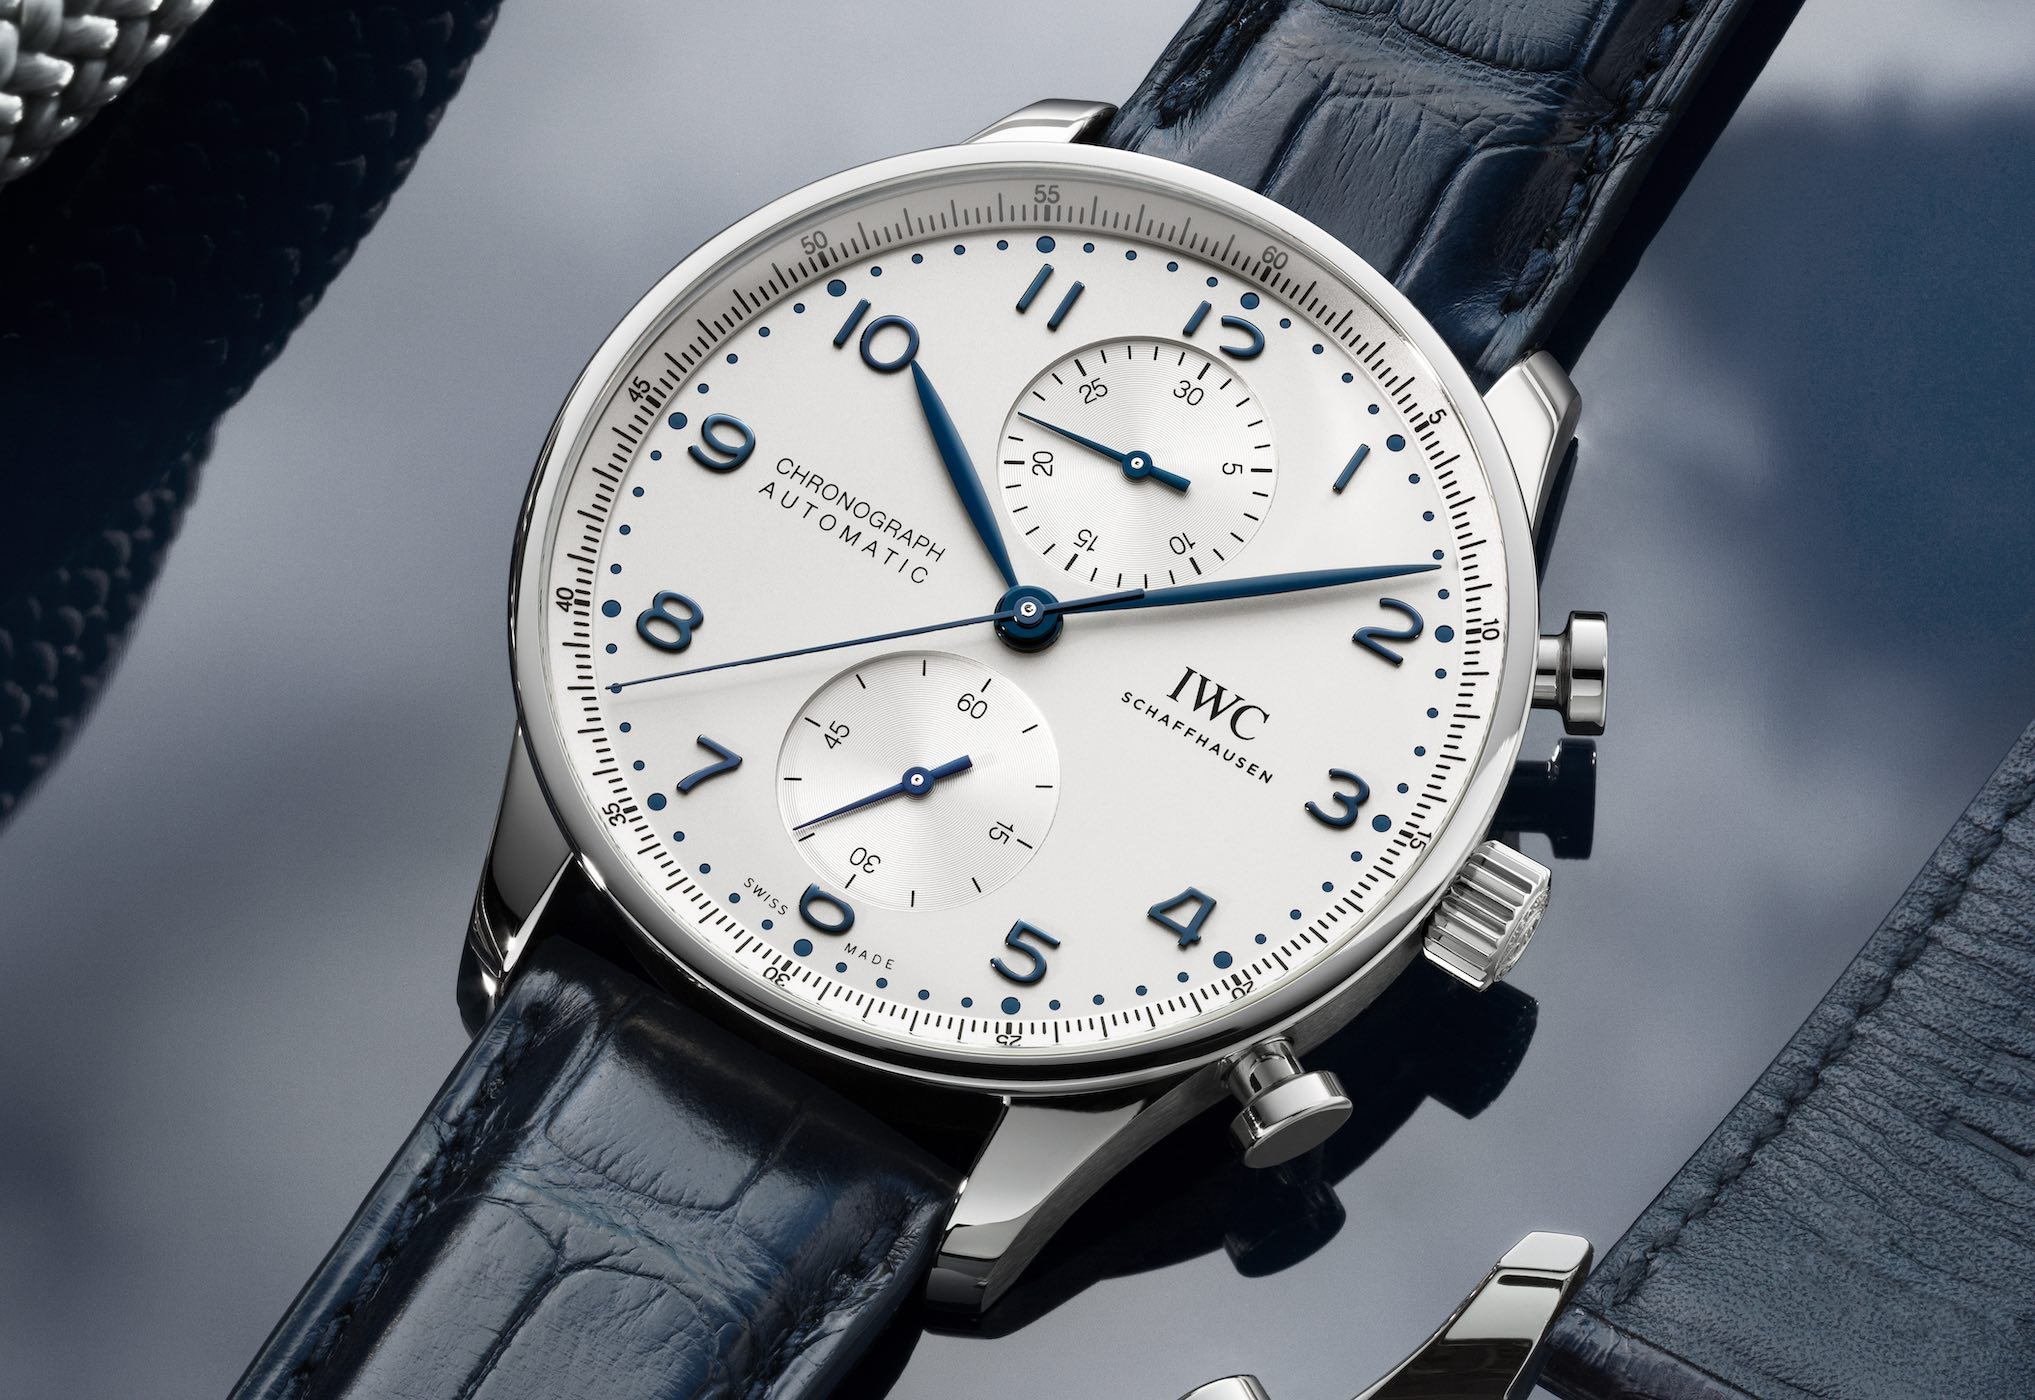 IWC Portugieser Chronograph iw3716 in-house calibre 69335